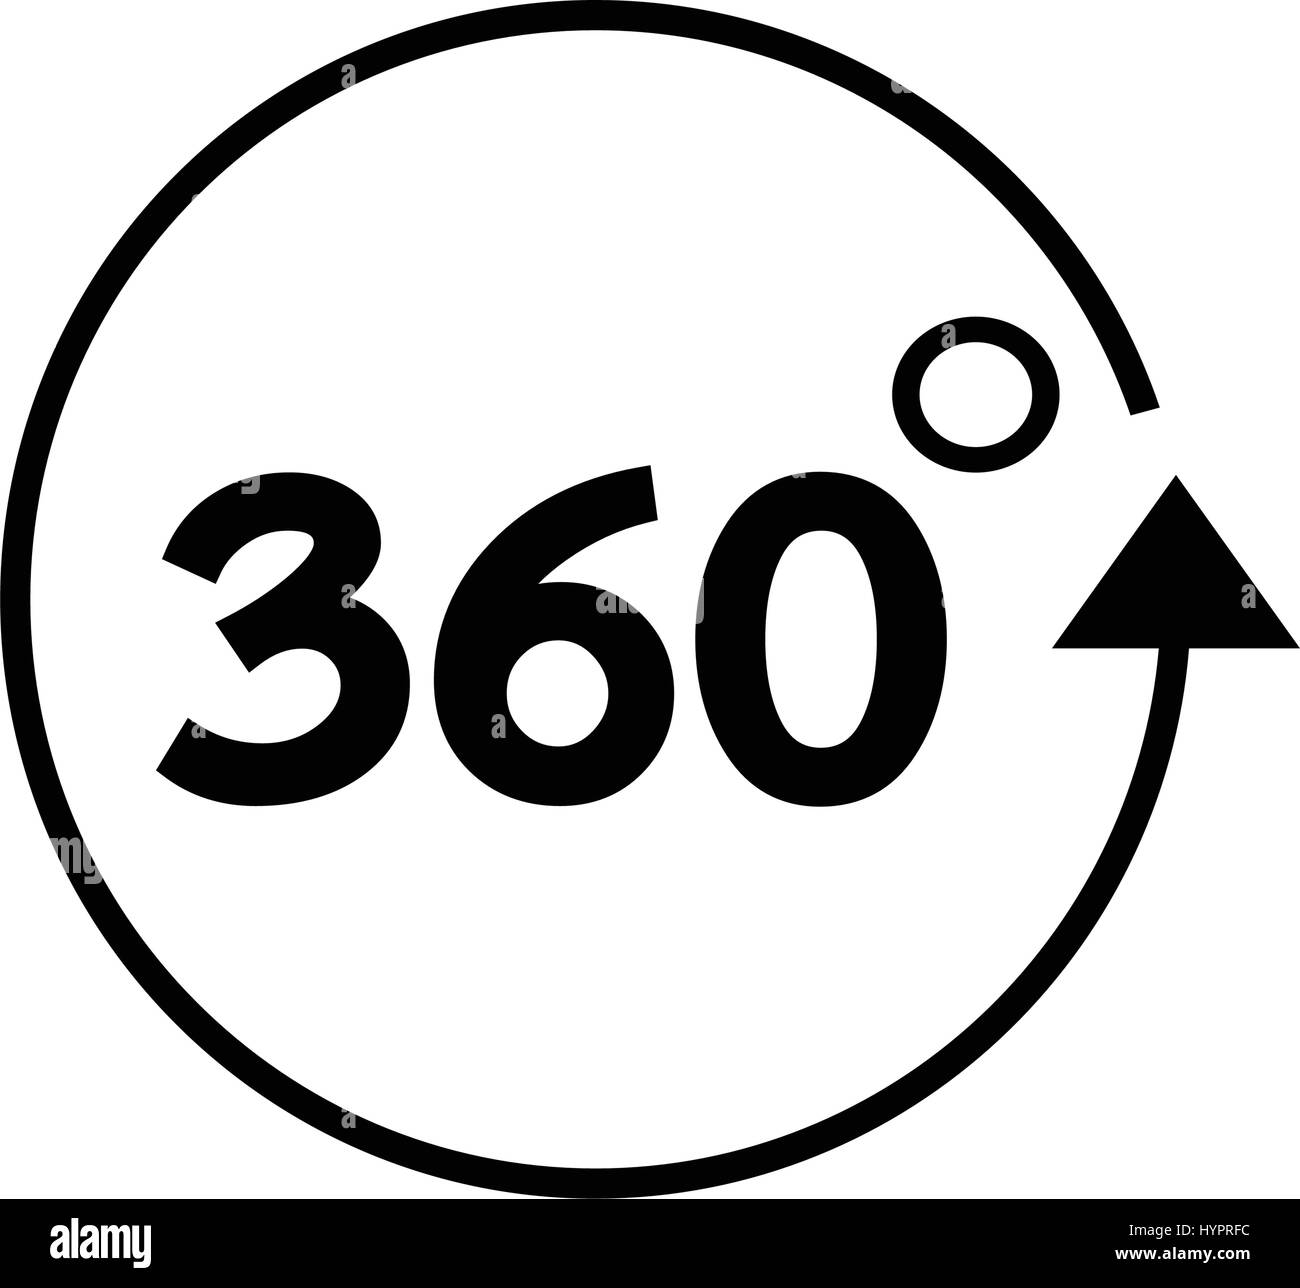 The three degrees black and white stock photos images alamy 360 degree icon stock image biocorpaavc Choice Image